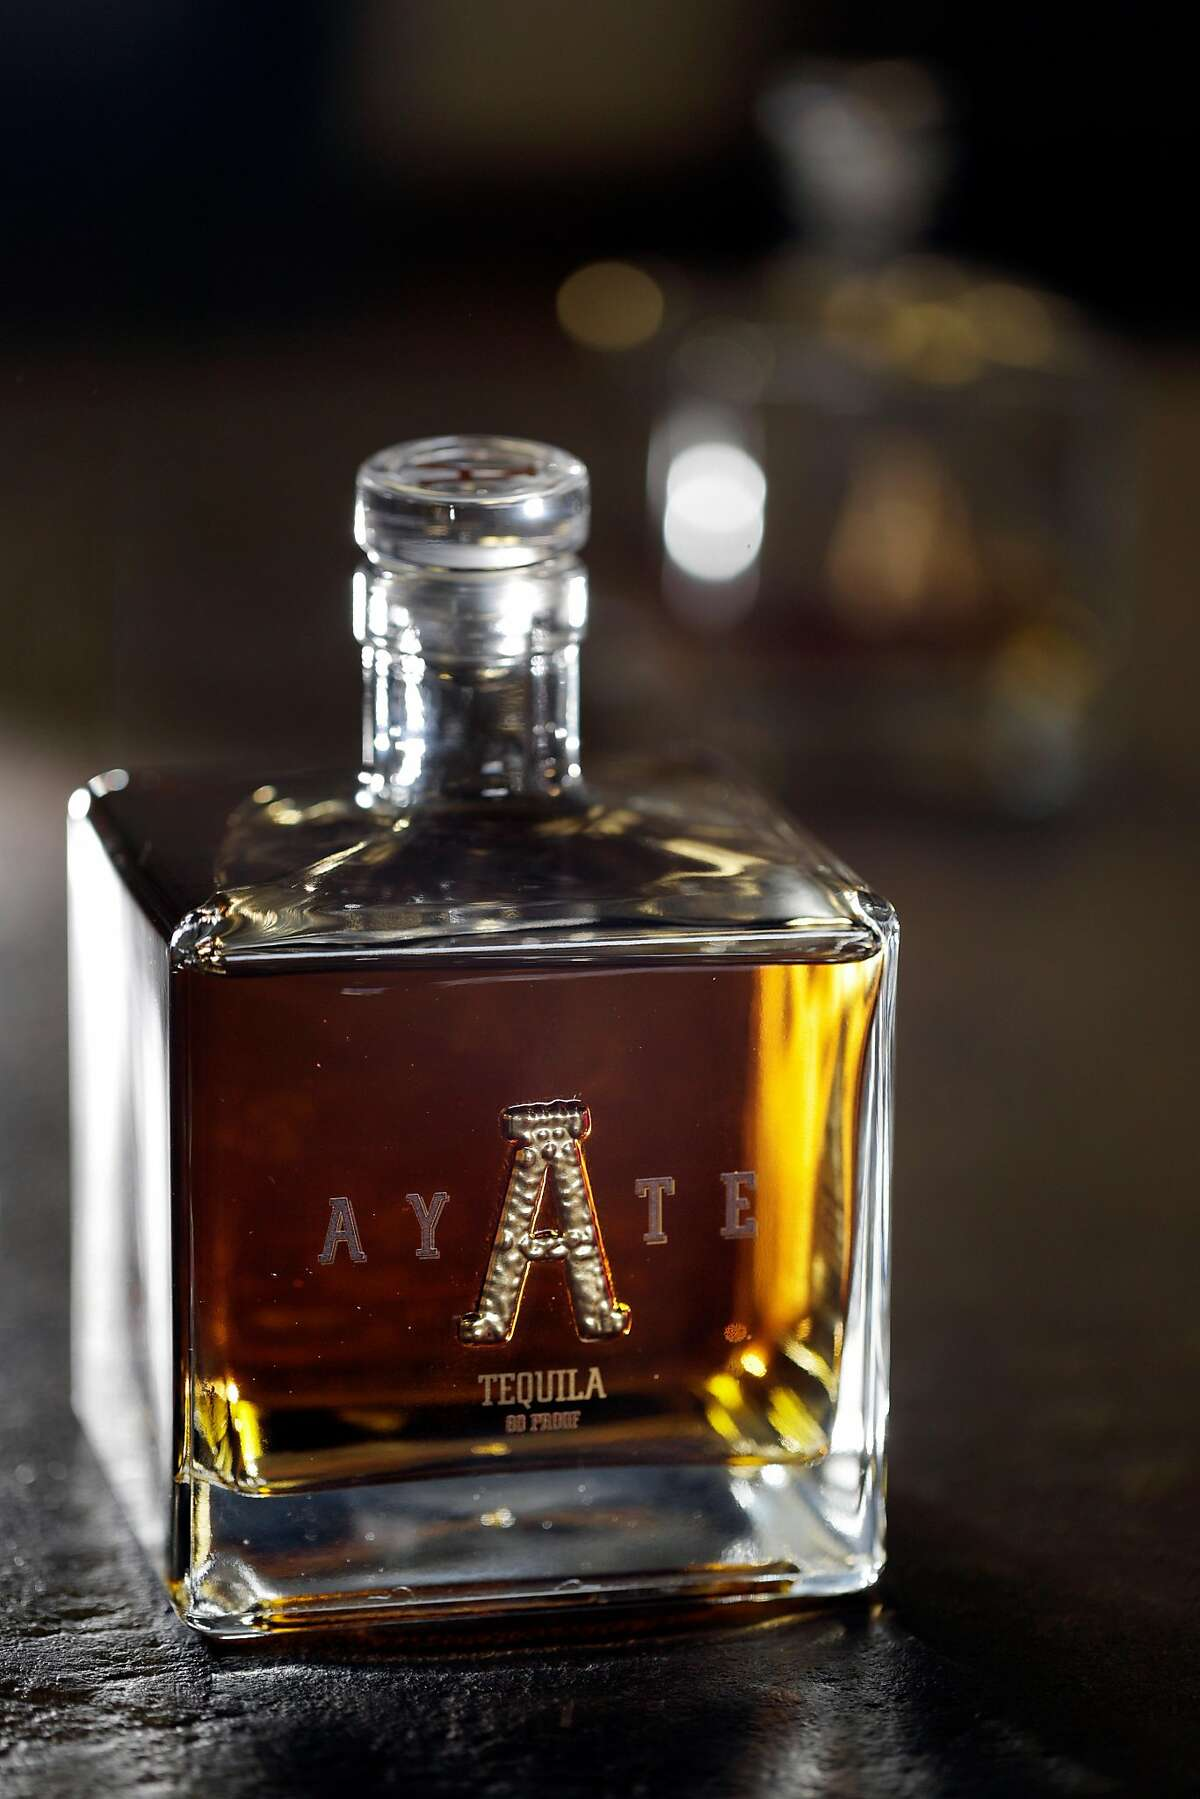 Ayate Tequila will be featured at Savage & Cooke, a new craft distillery on Mare Island, with owner Dave Phinney, a successful winemaker in Vallejo, Calif., Monday, October 2, 2017. The plans for the new distillery also includes future facilities for wineries to showcase their products.